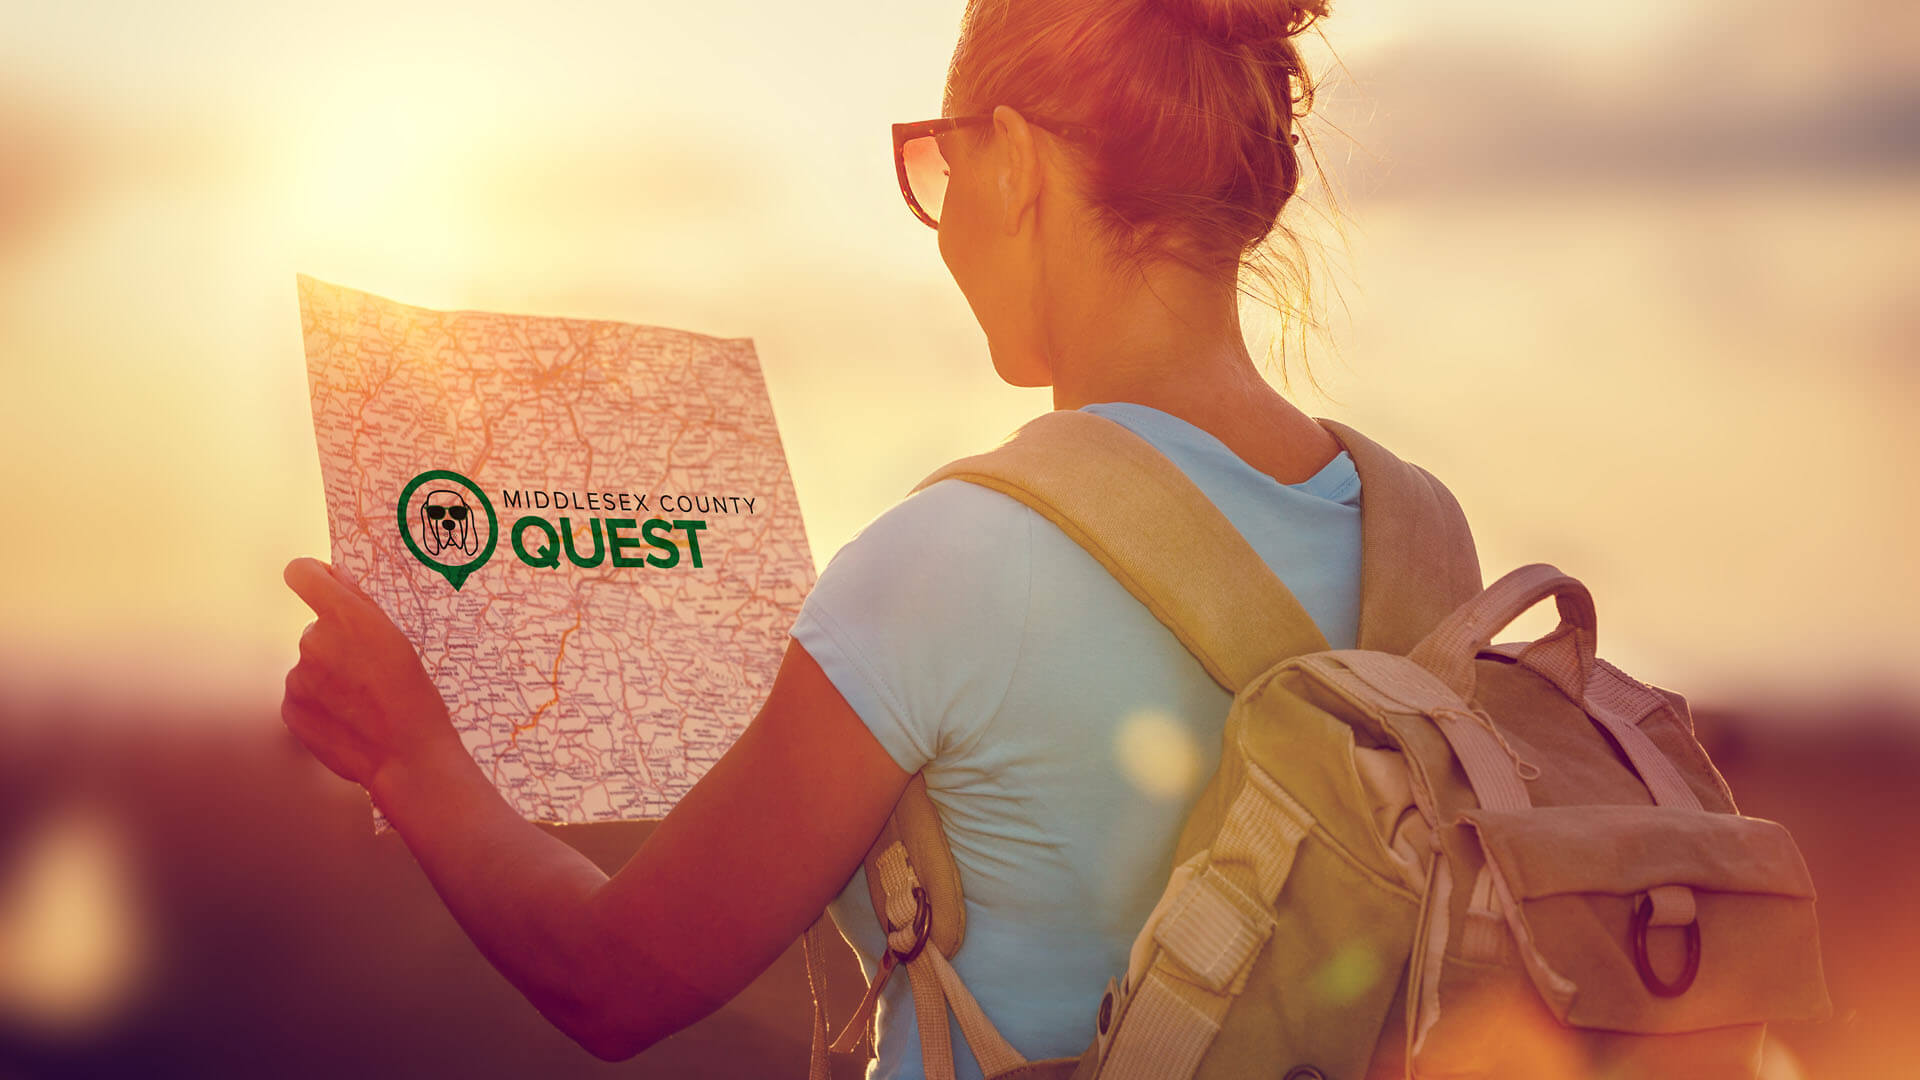 Explore Your Community with Middlesex County Quest